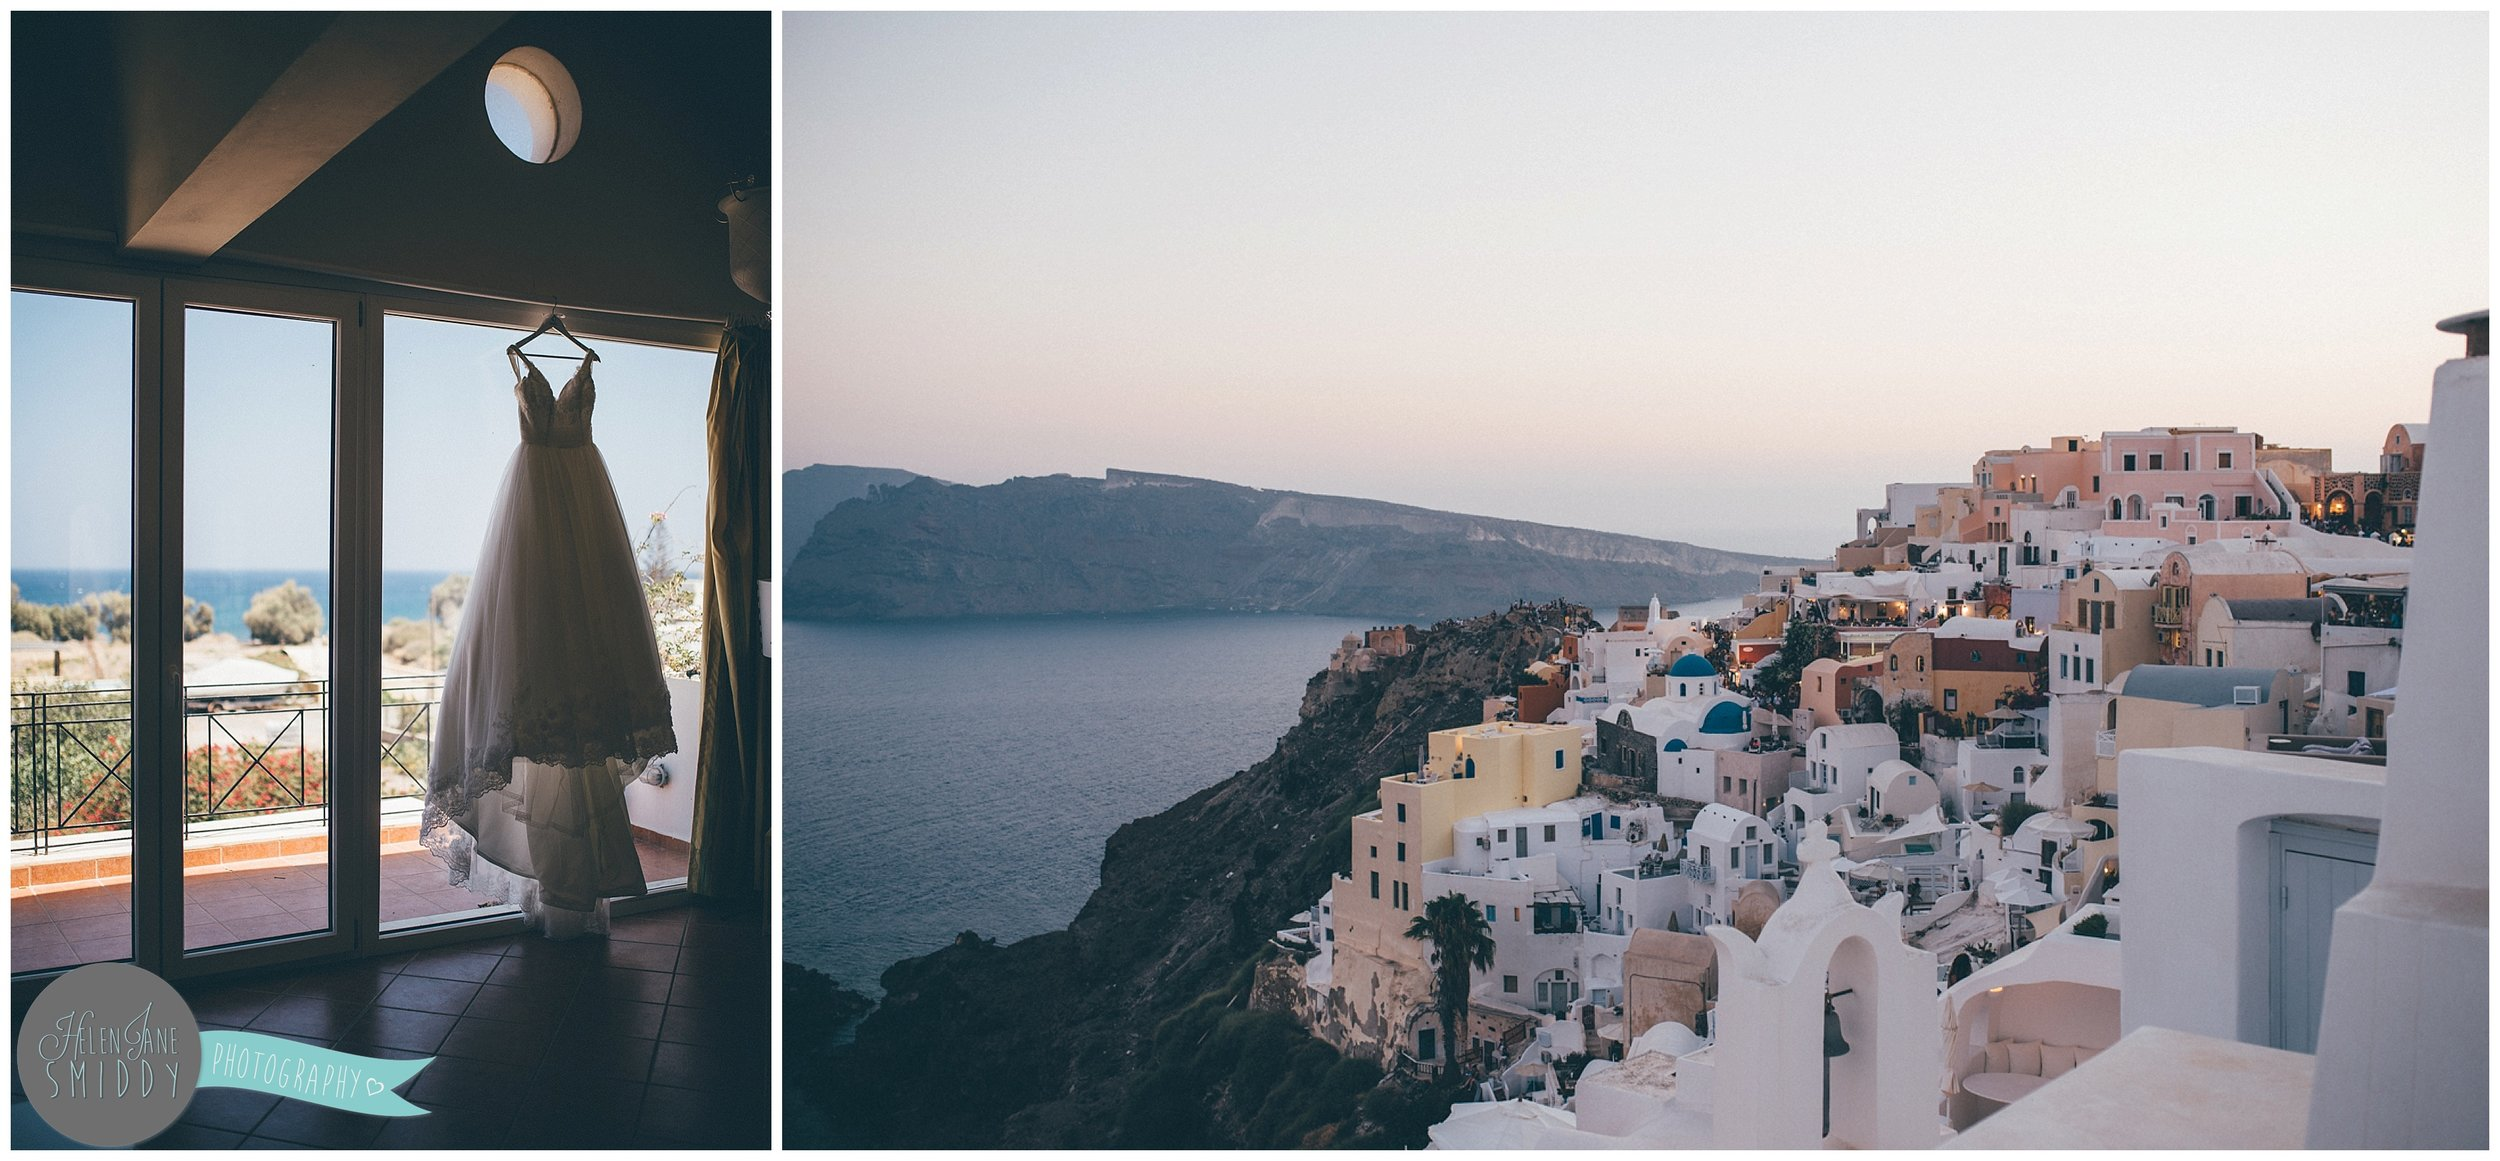 wedding-weddingphotography-photography-destination-wedding-destinationweddingphotography-destinationphotographer-santorini-greece-santoriniwedding-cheshirewedding-cheshireweddinphotographer-cheshireweddingphotography-fira-thira-travel-travelphotographer-travelphotography-bluefroofs-bride-brideandgroom-weddinggown